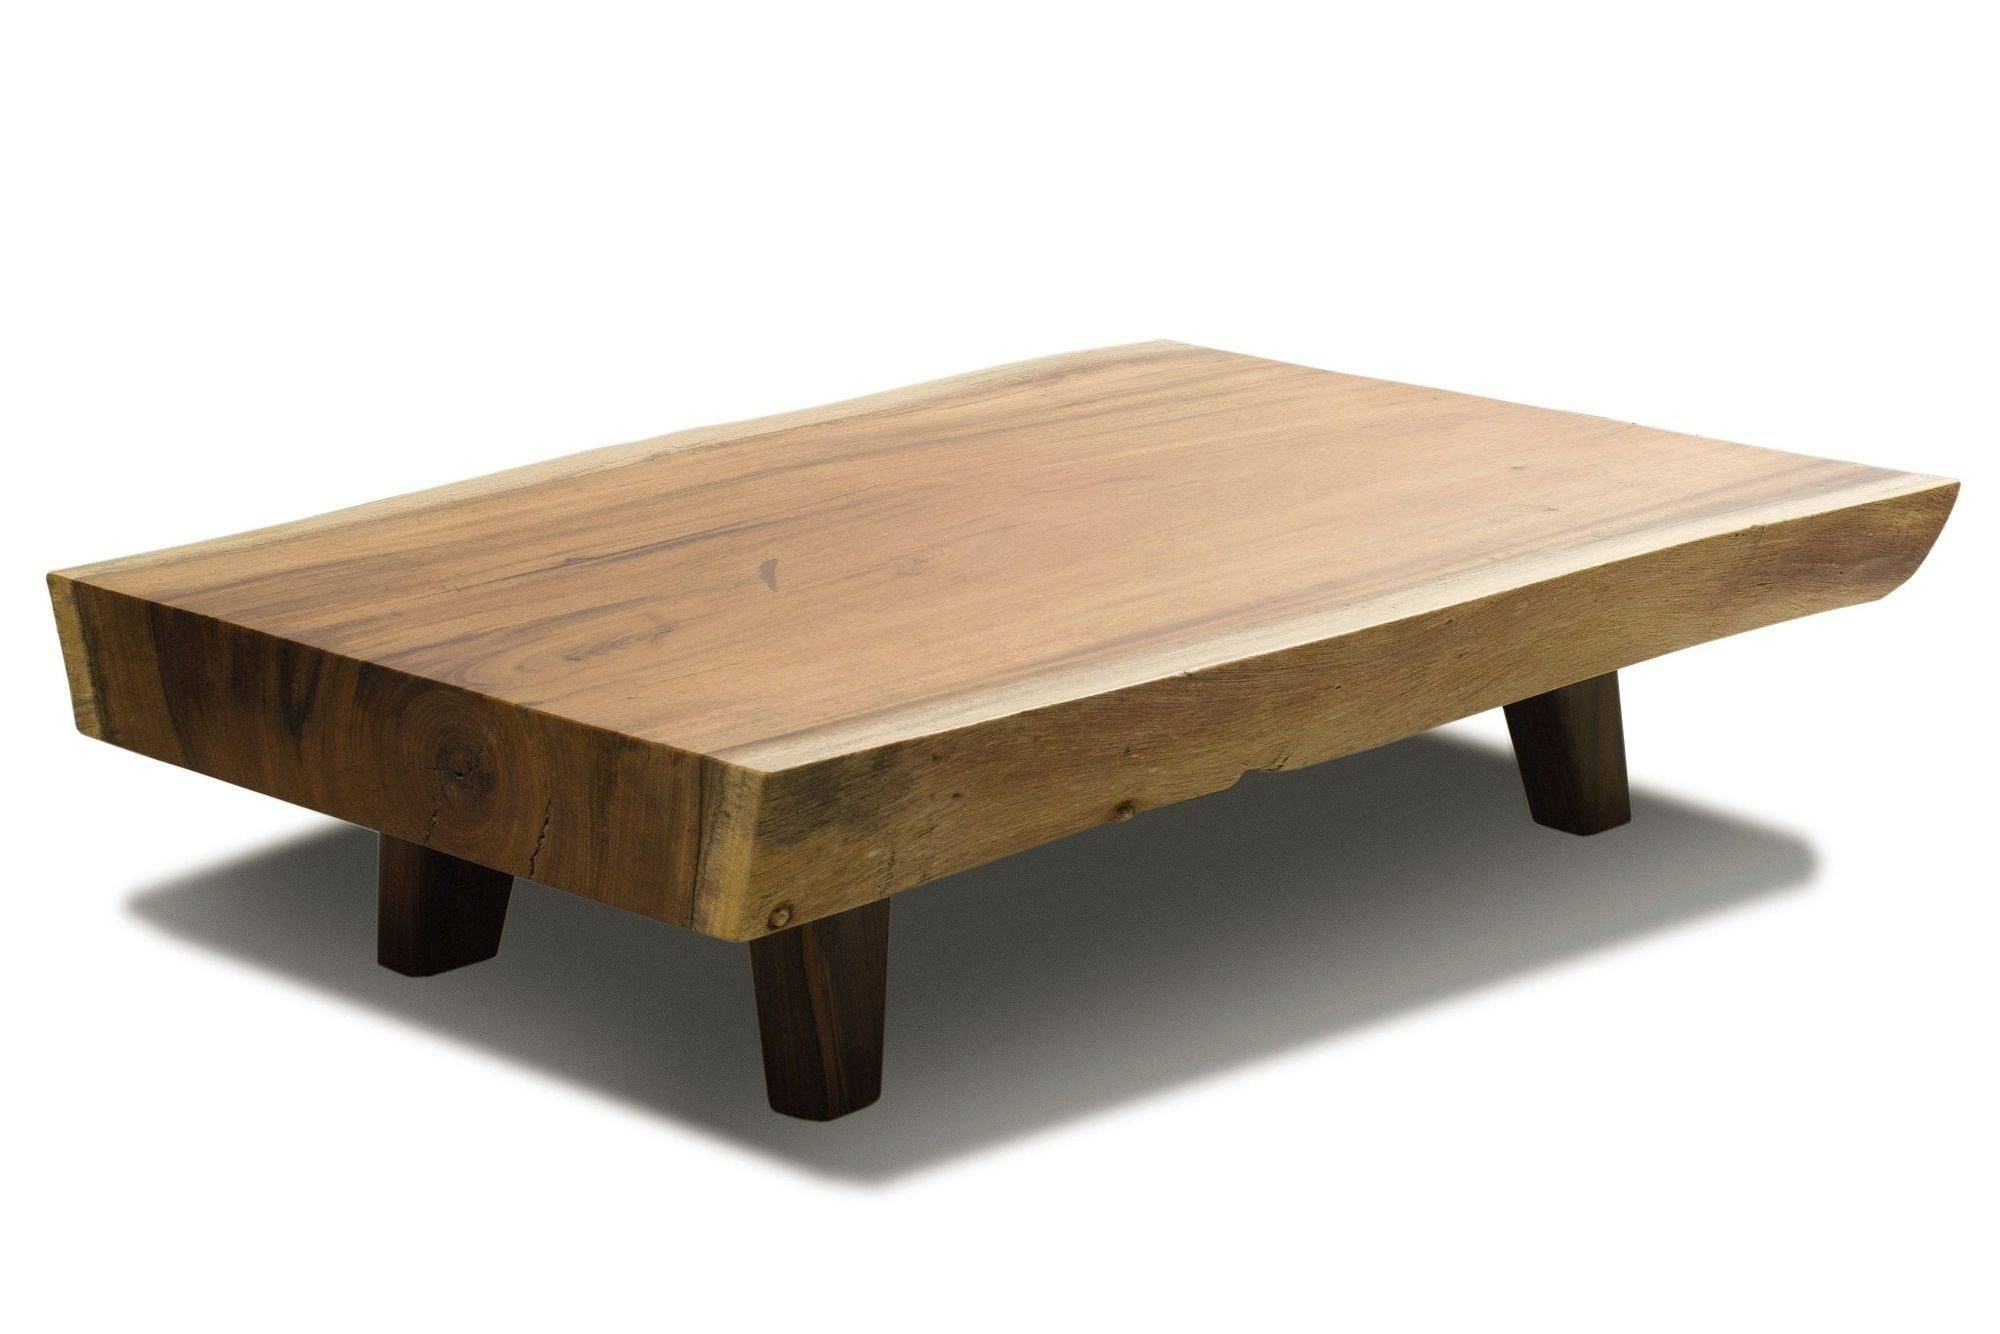 High Quality Natural Wood Coffee Table To Set In Rustic Farmhouse with regard to Quality Coffee Tables (Image 17 of 30)